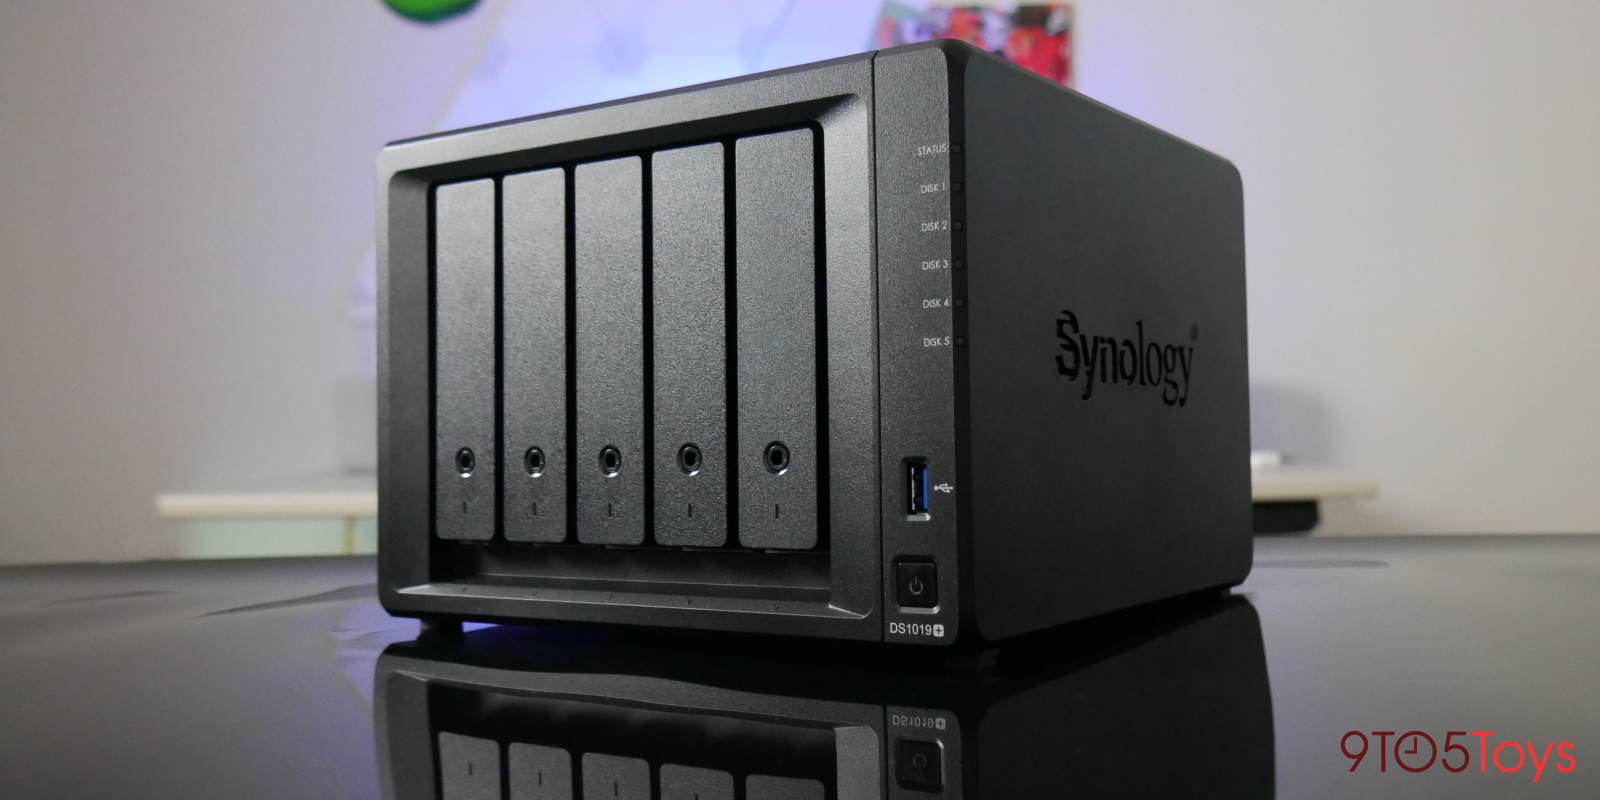 Synology DS1019+ NAS Review: The ultimate home server - 9to5Toys